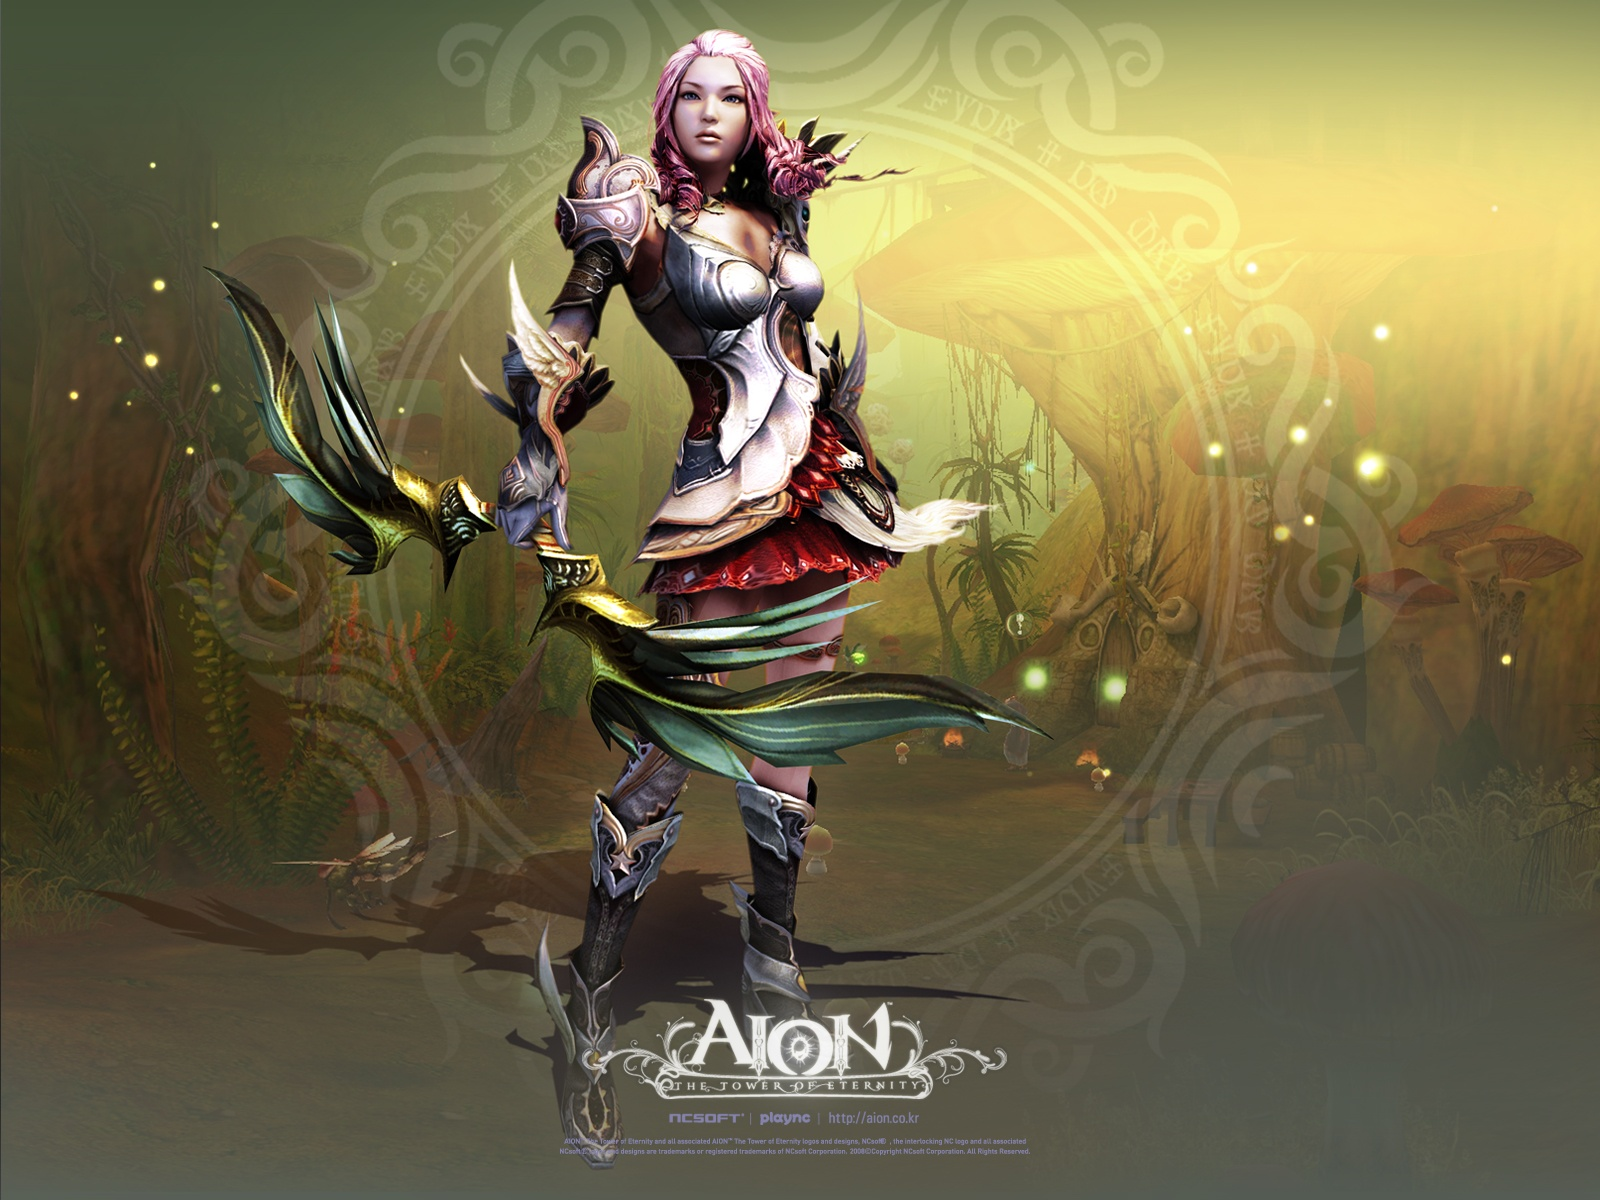 click to free download the wallpaper--Cool Game Post, Aion, the Cool Girl in Stand, She is Not Someone to be Looked Down Upon 1600X1200 free wallpaper download